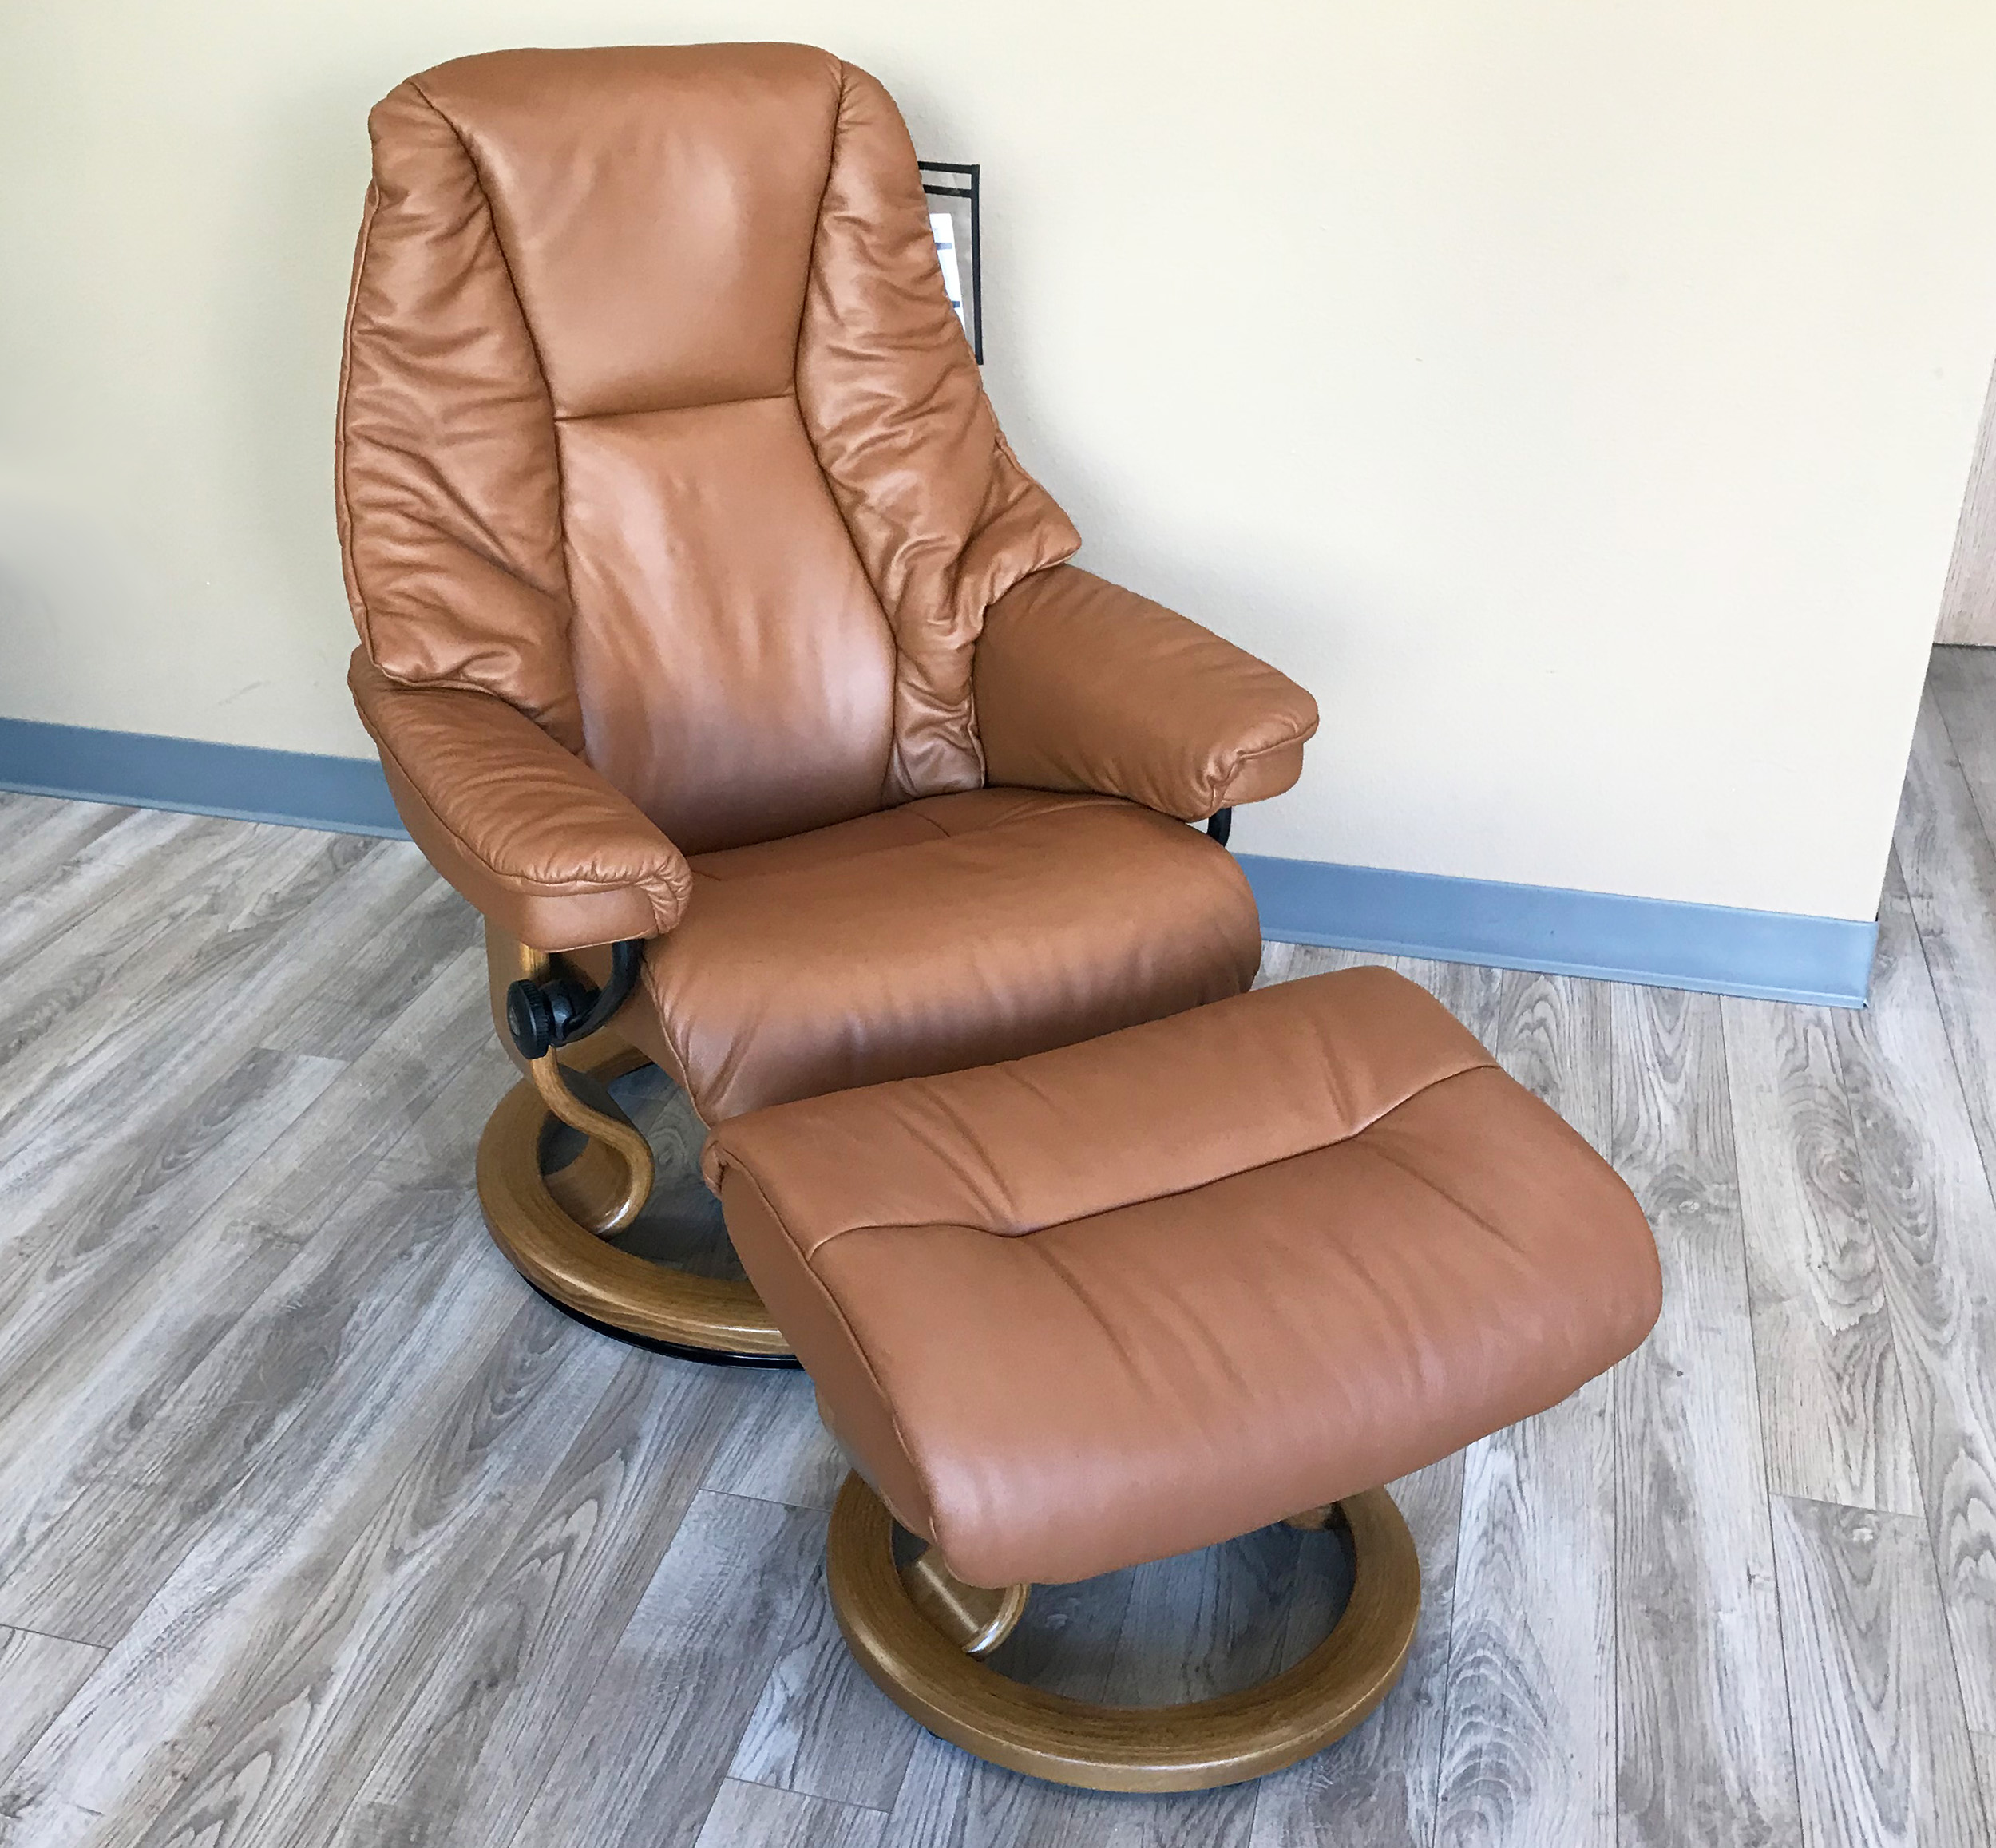 Stressless Live Paloma Copper Leather Recliner and Ottoman & Stressless Live Paloma Copper Leather by Ekornes - Stressless Live ... islam-shia.org